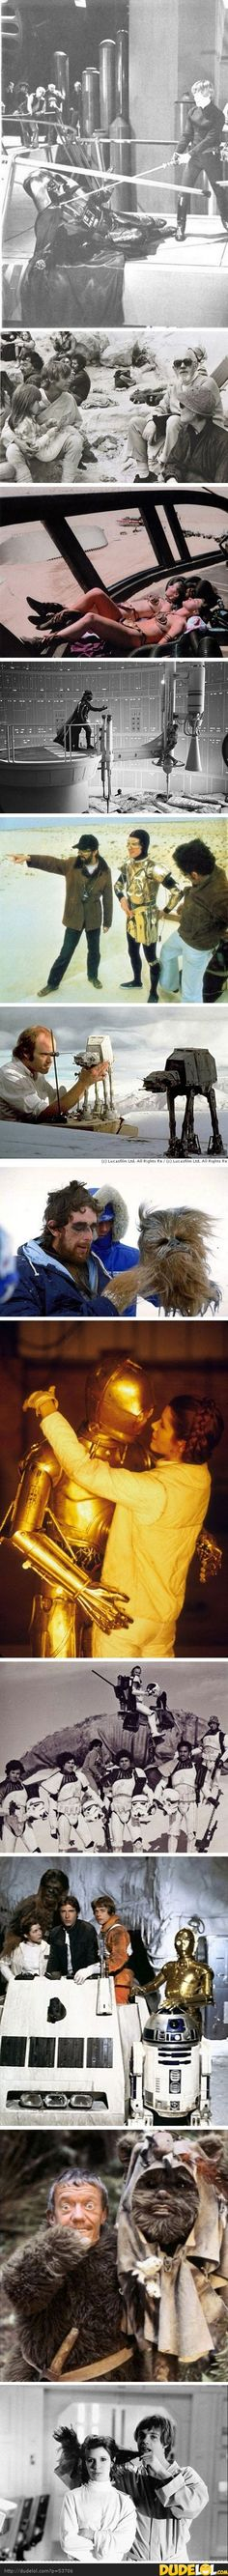 Behind the Star Wars scenes :P